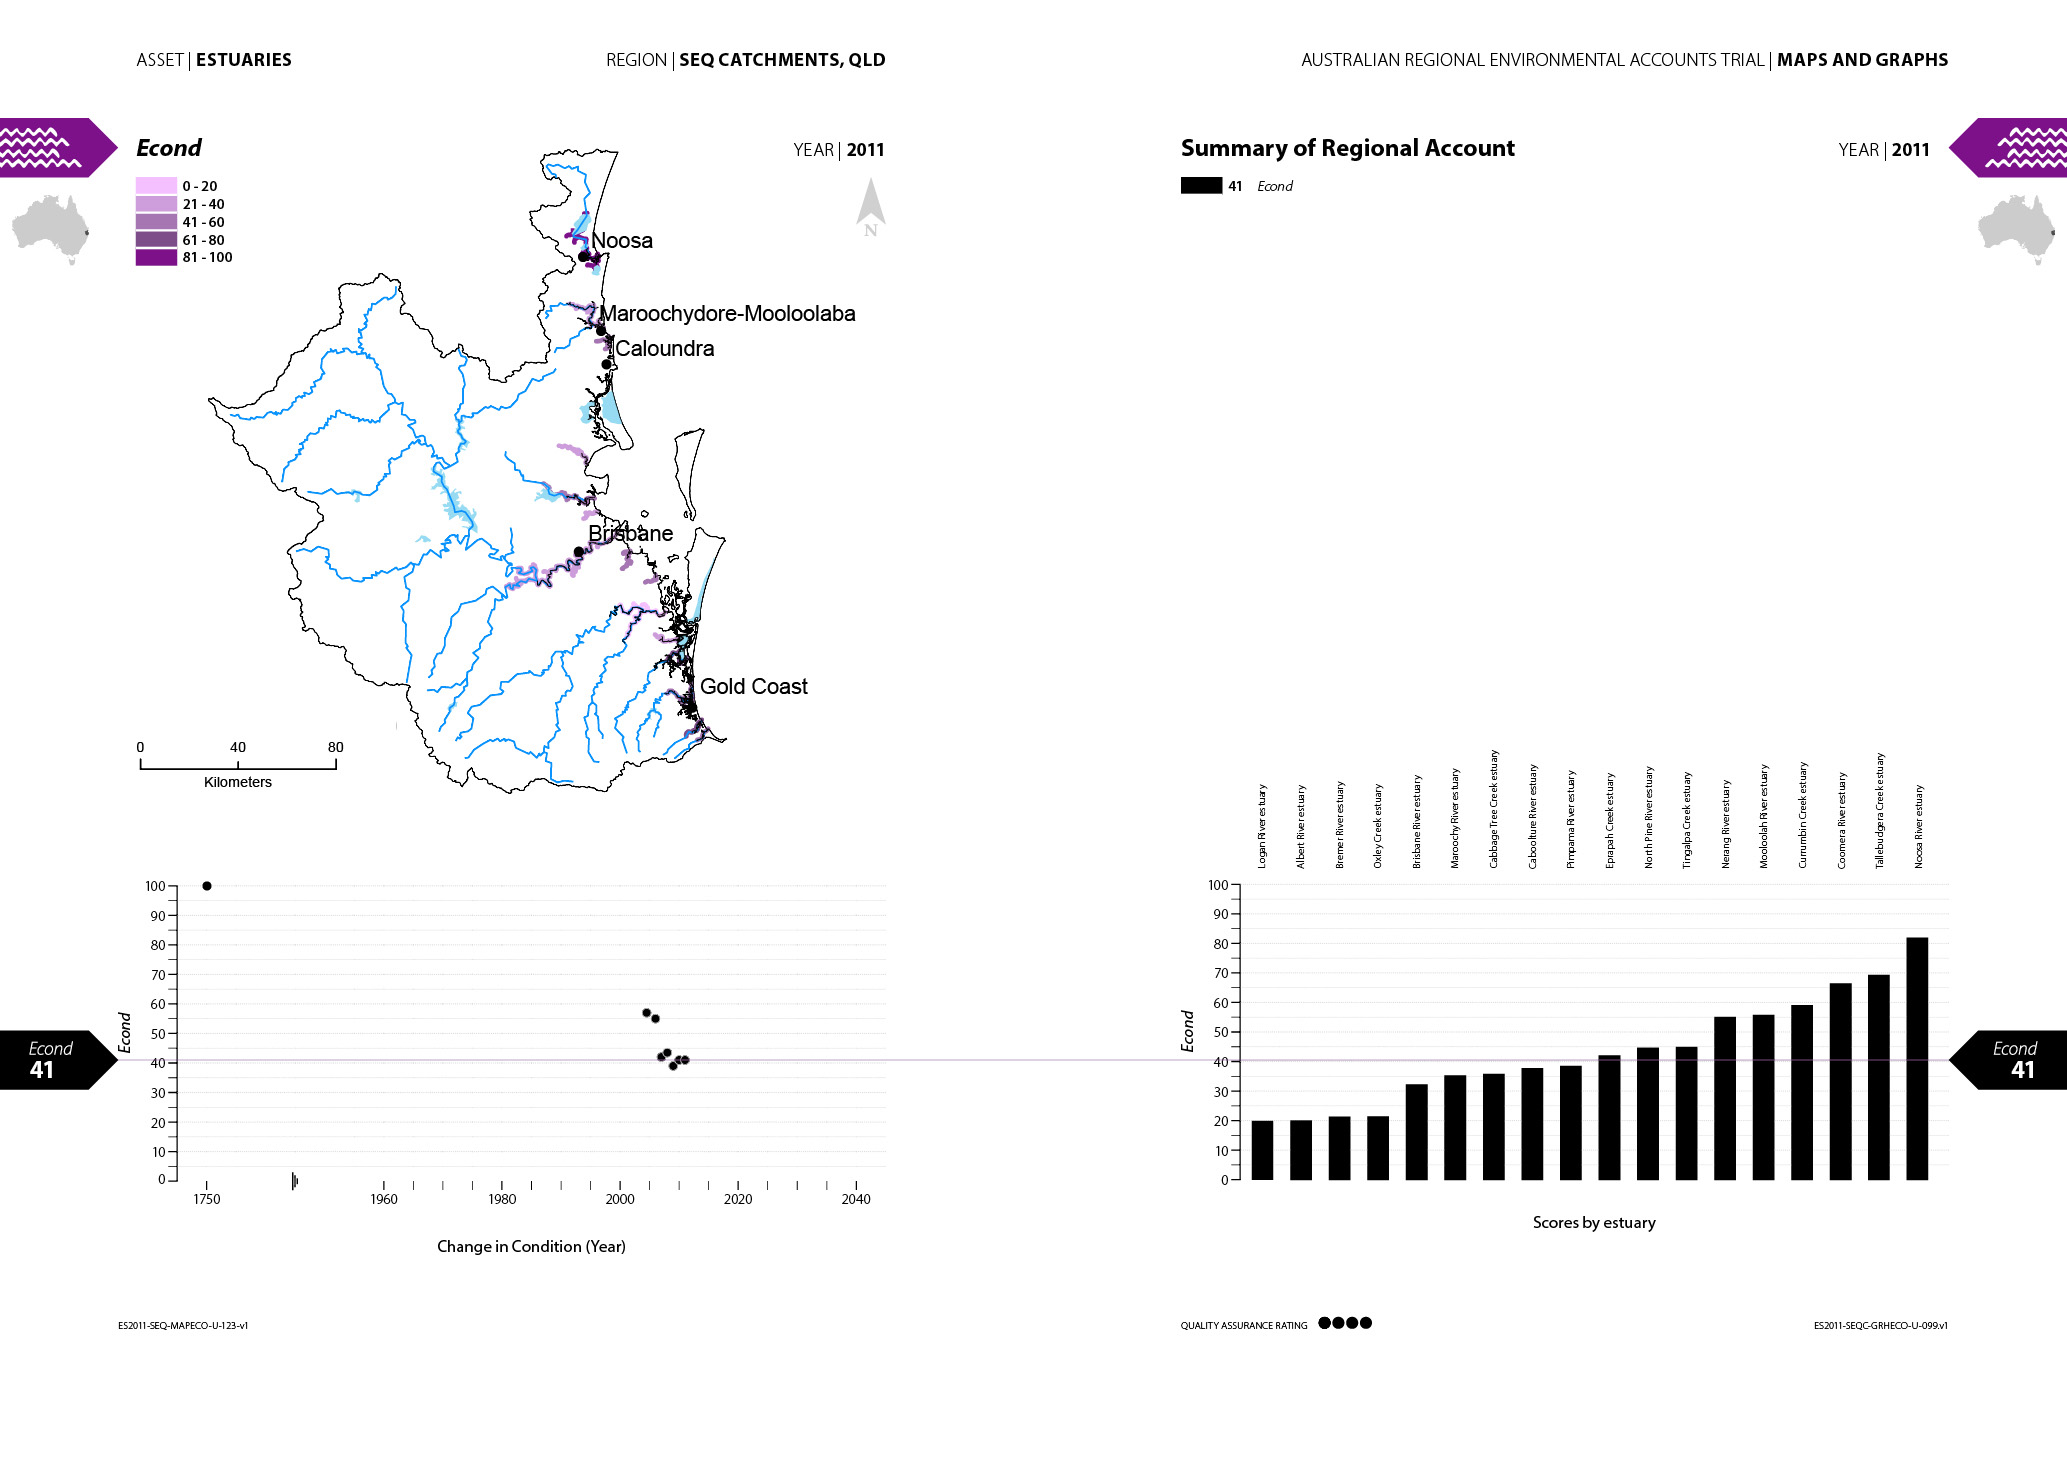 Econds for estuary assets in SEQ Catchments, Queensland for 2011